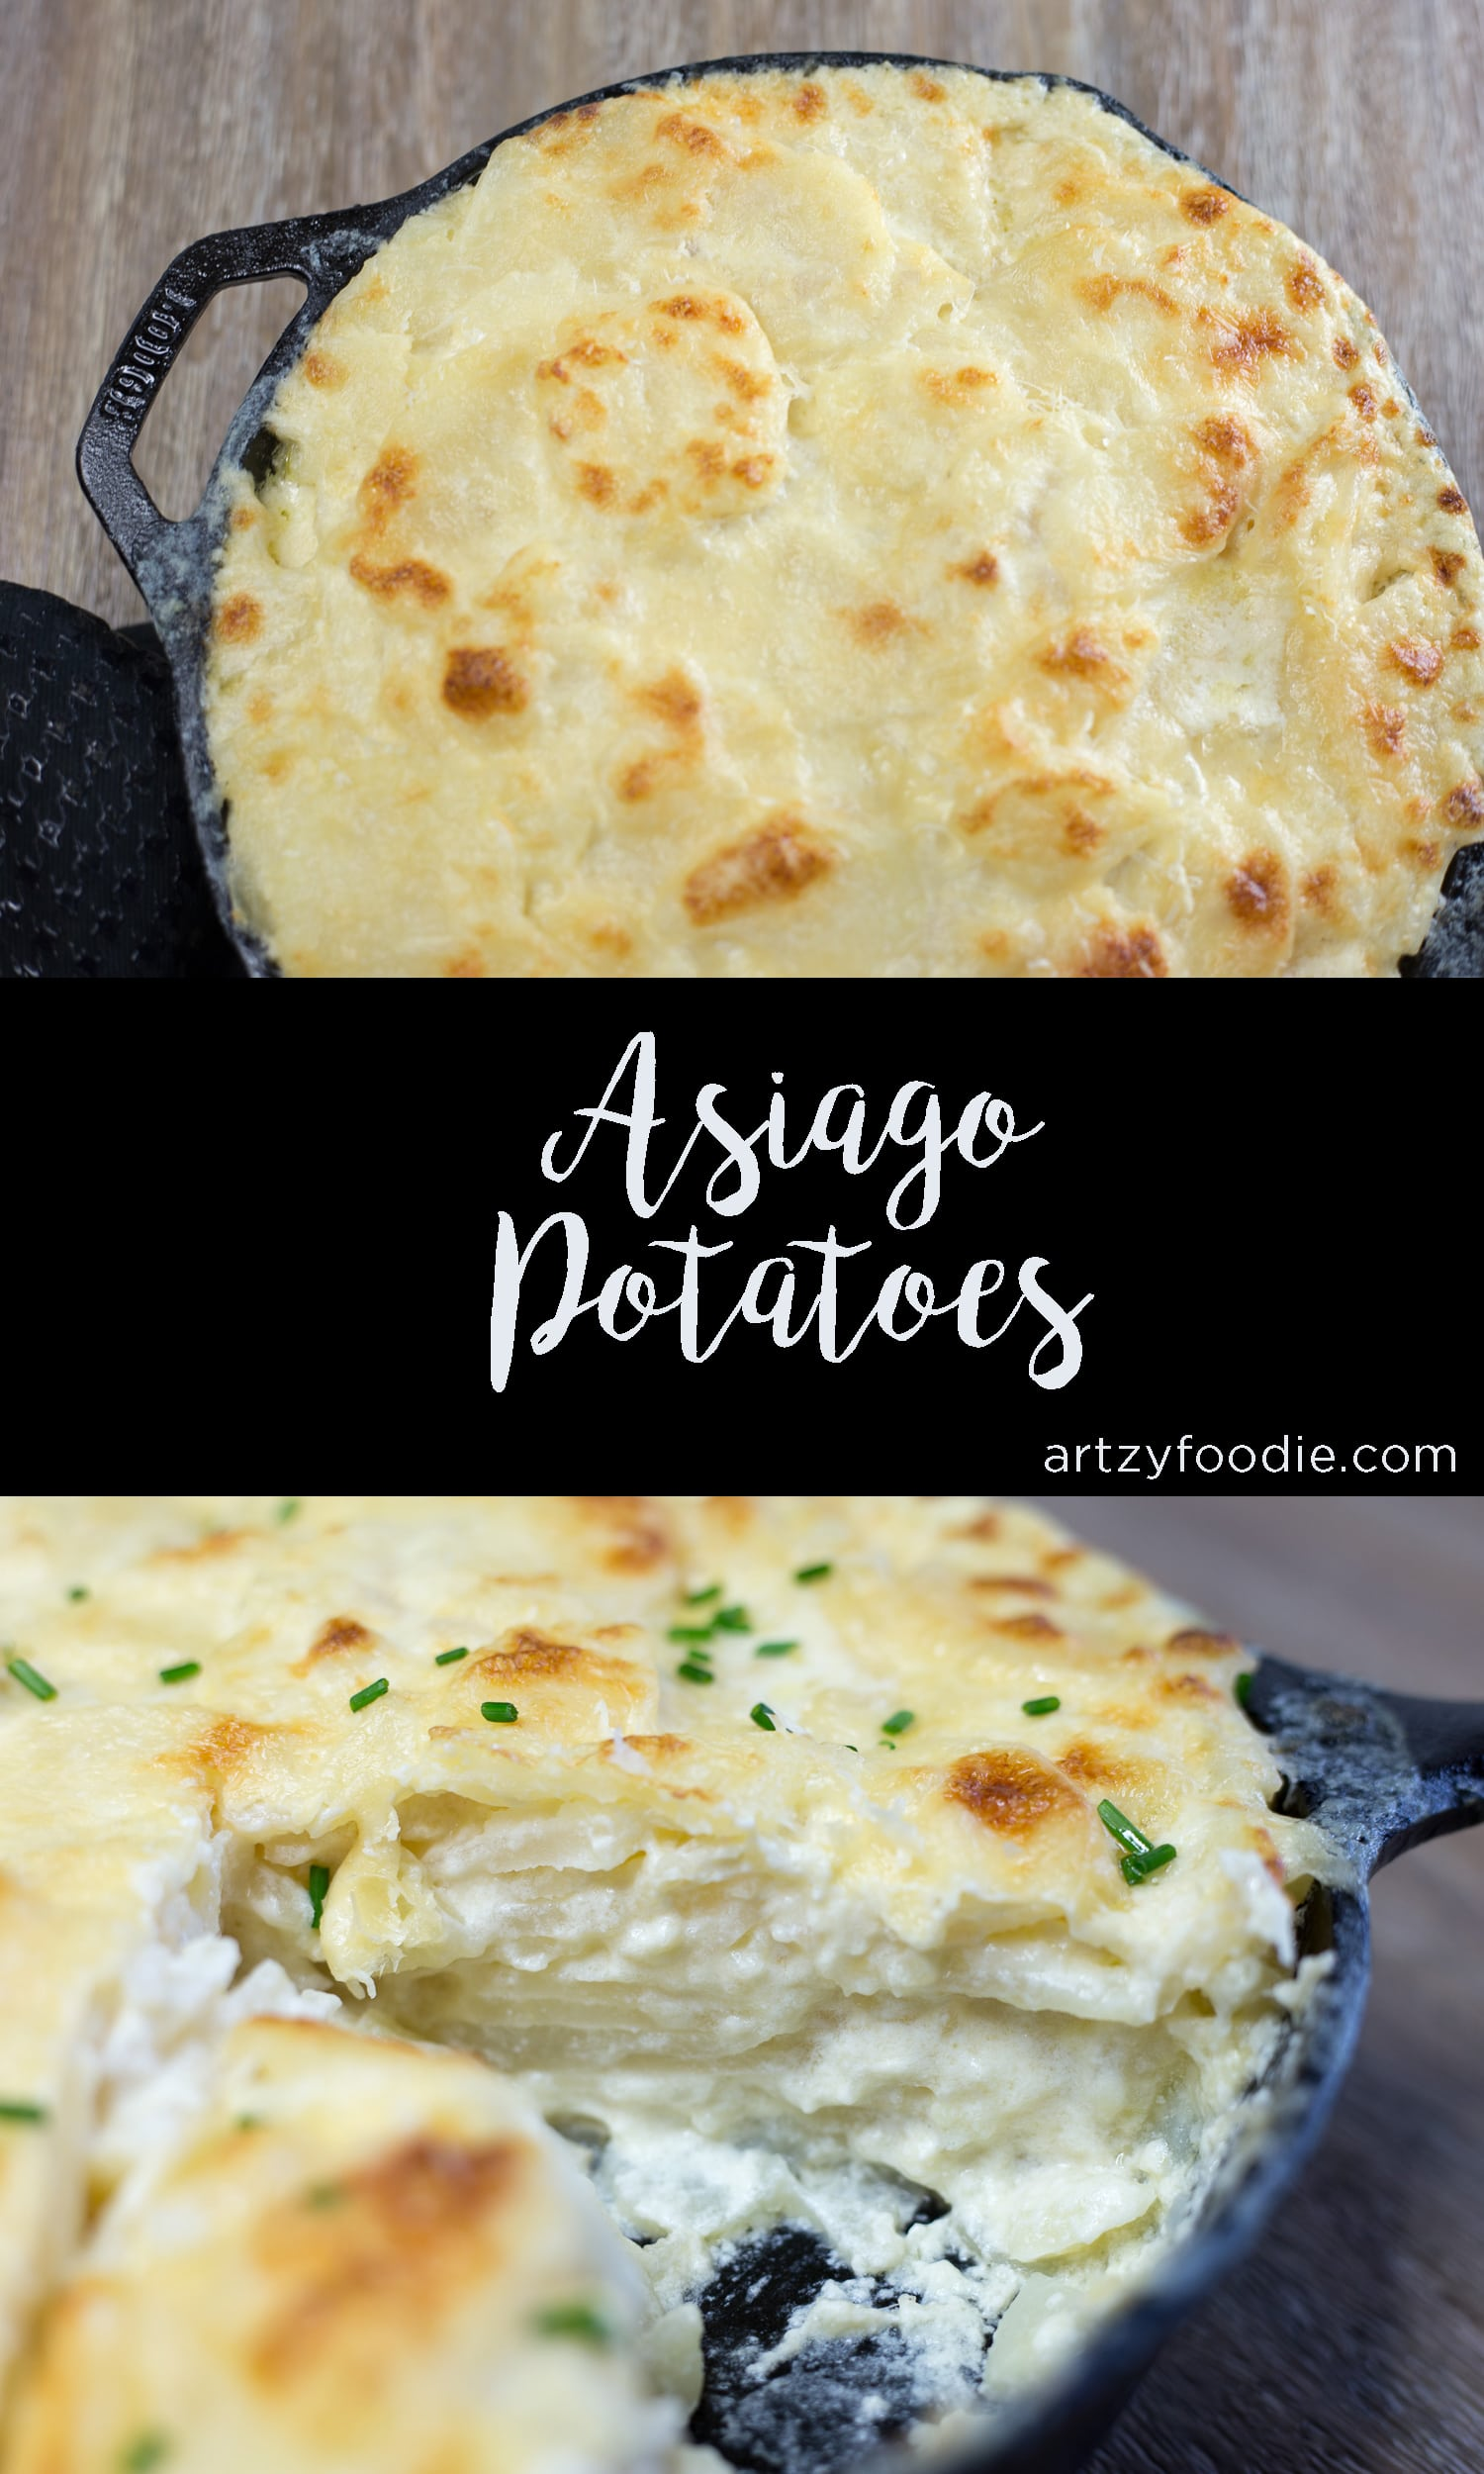 Asiago potatoes are a cheesy, creamy side dish that is irresistible! |artzyfoodie.com|